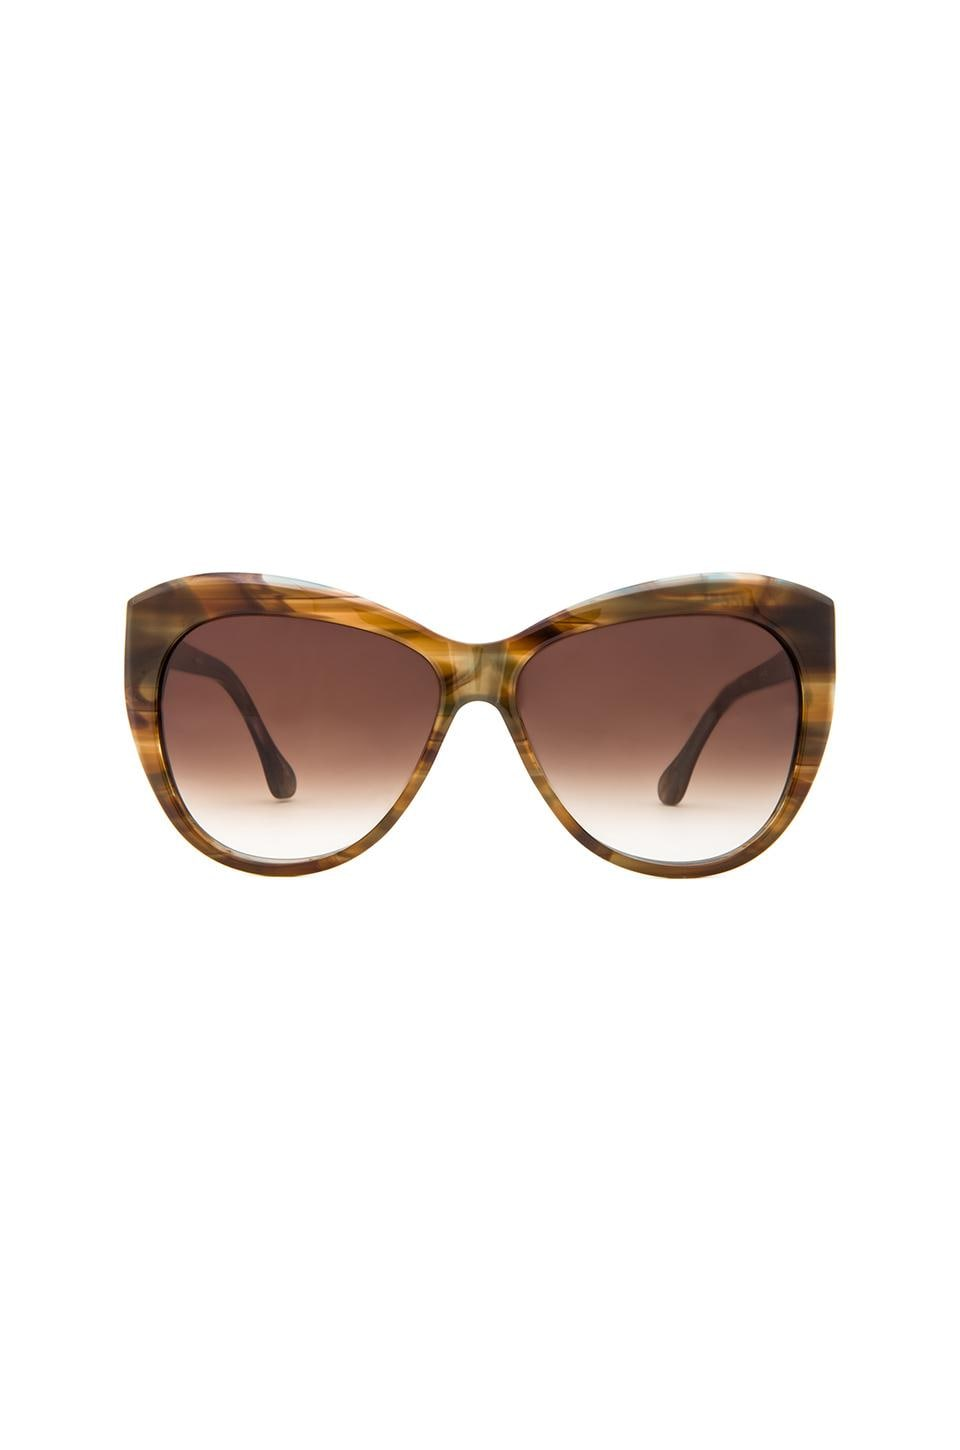 Elizabeth and James Crescent Sunglasses in Brown